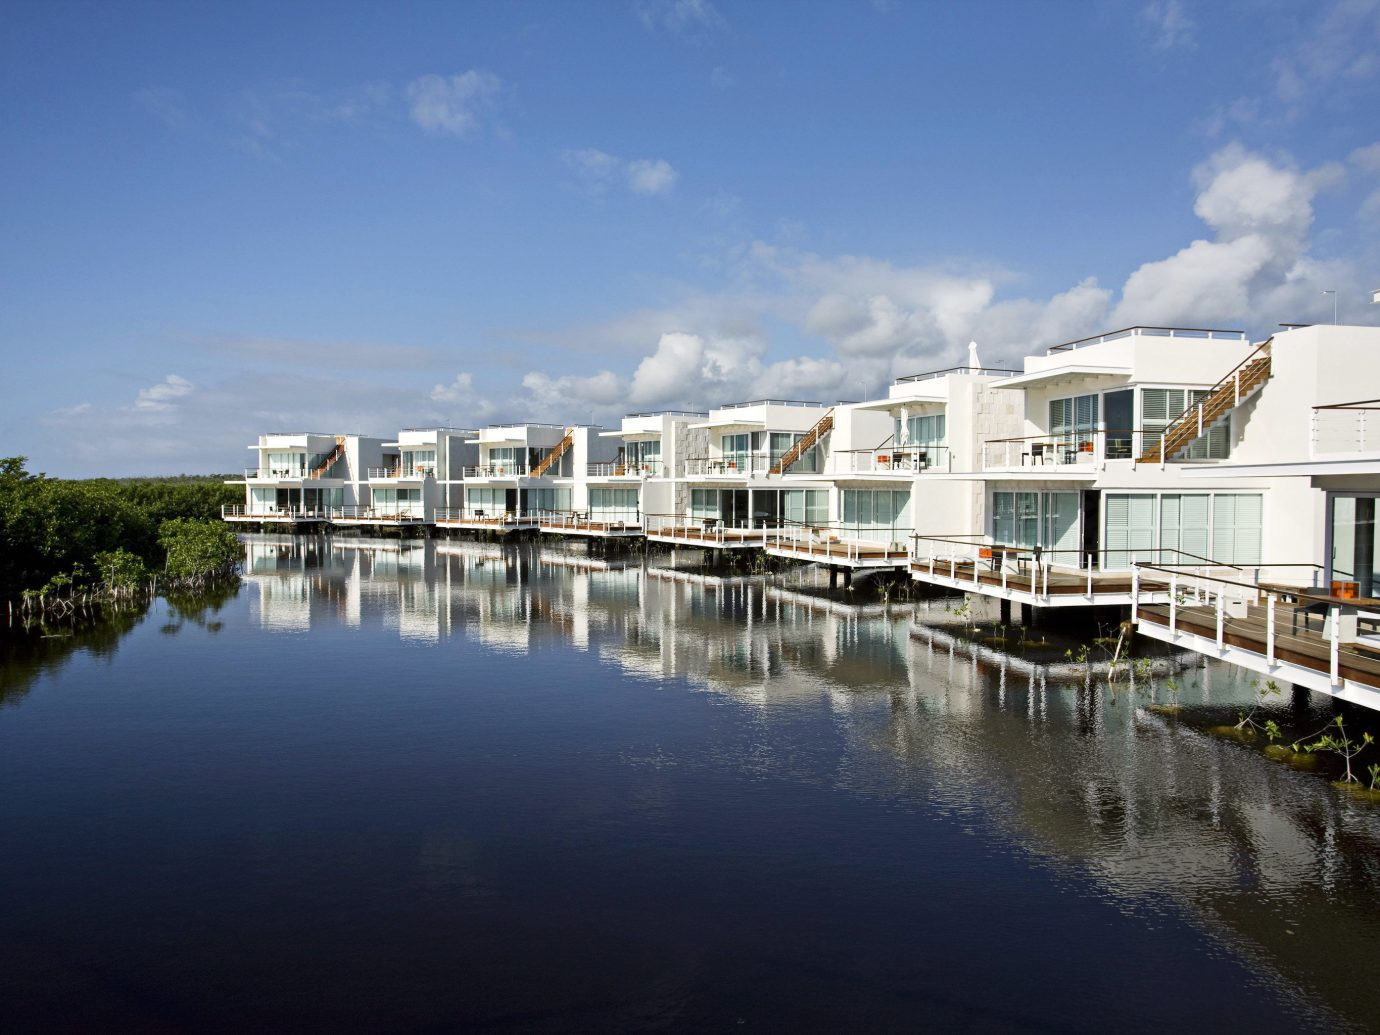 Adult-only All-inclusive Grounds Hotels Luxury Wellness sky outdoor water reflection Boat scene River marina dock Sea waterway Harbor Coast bay cityscape traveling day